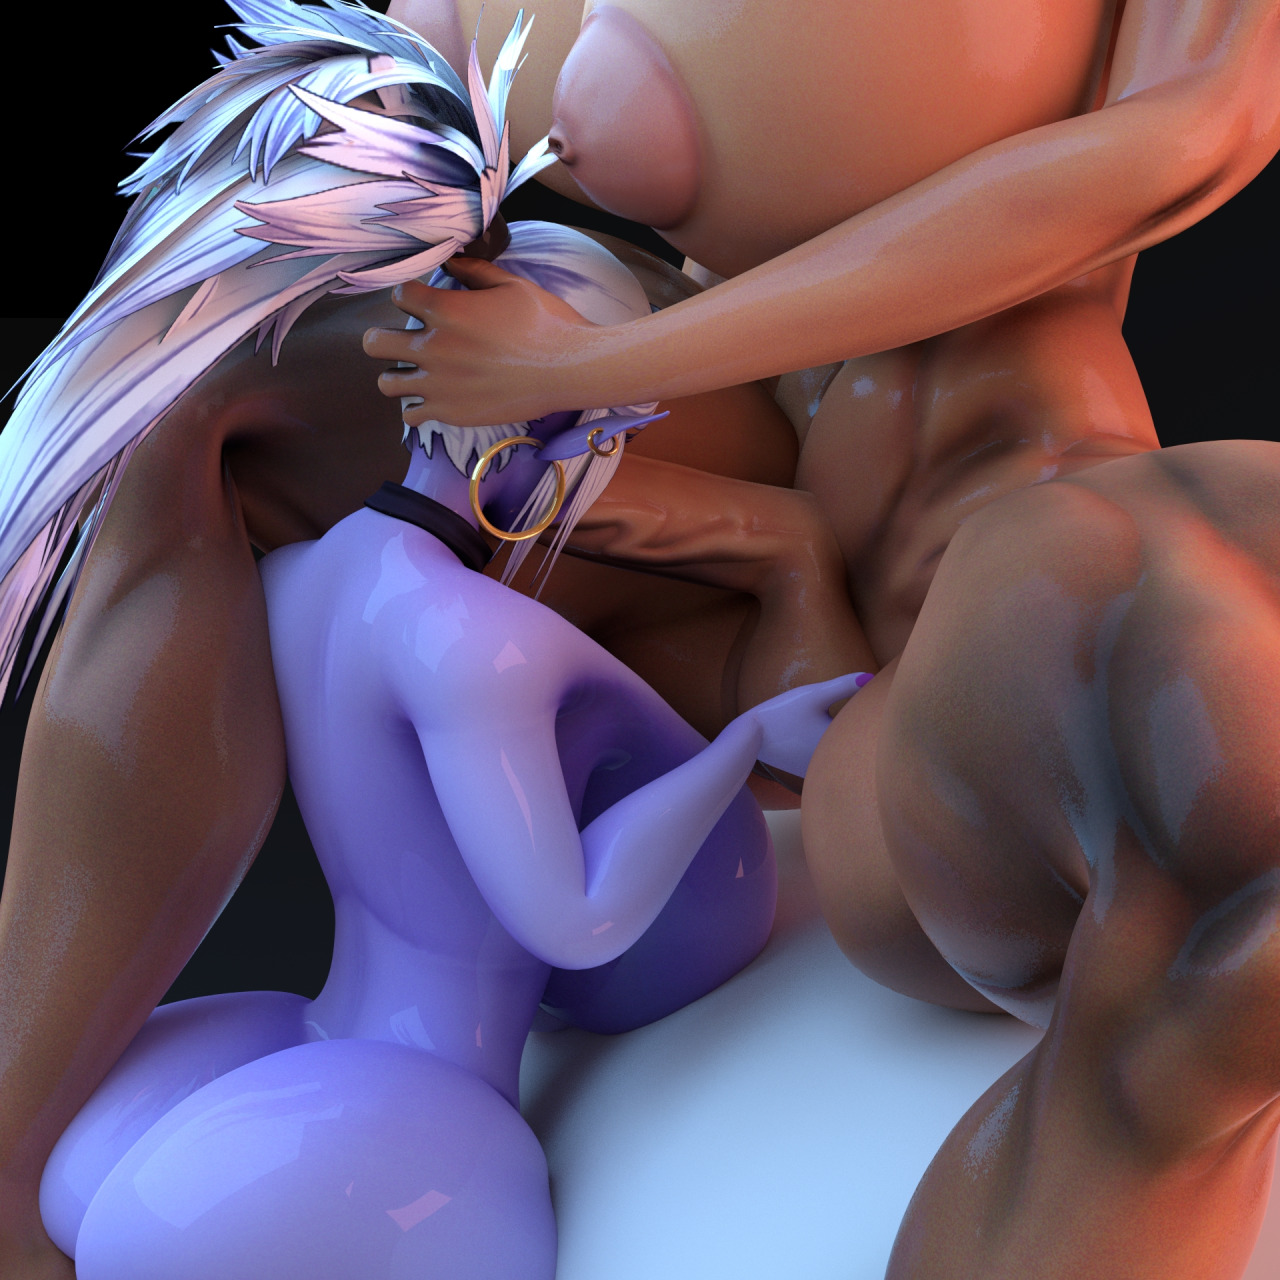 3d monster futanari adult picture